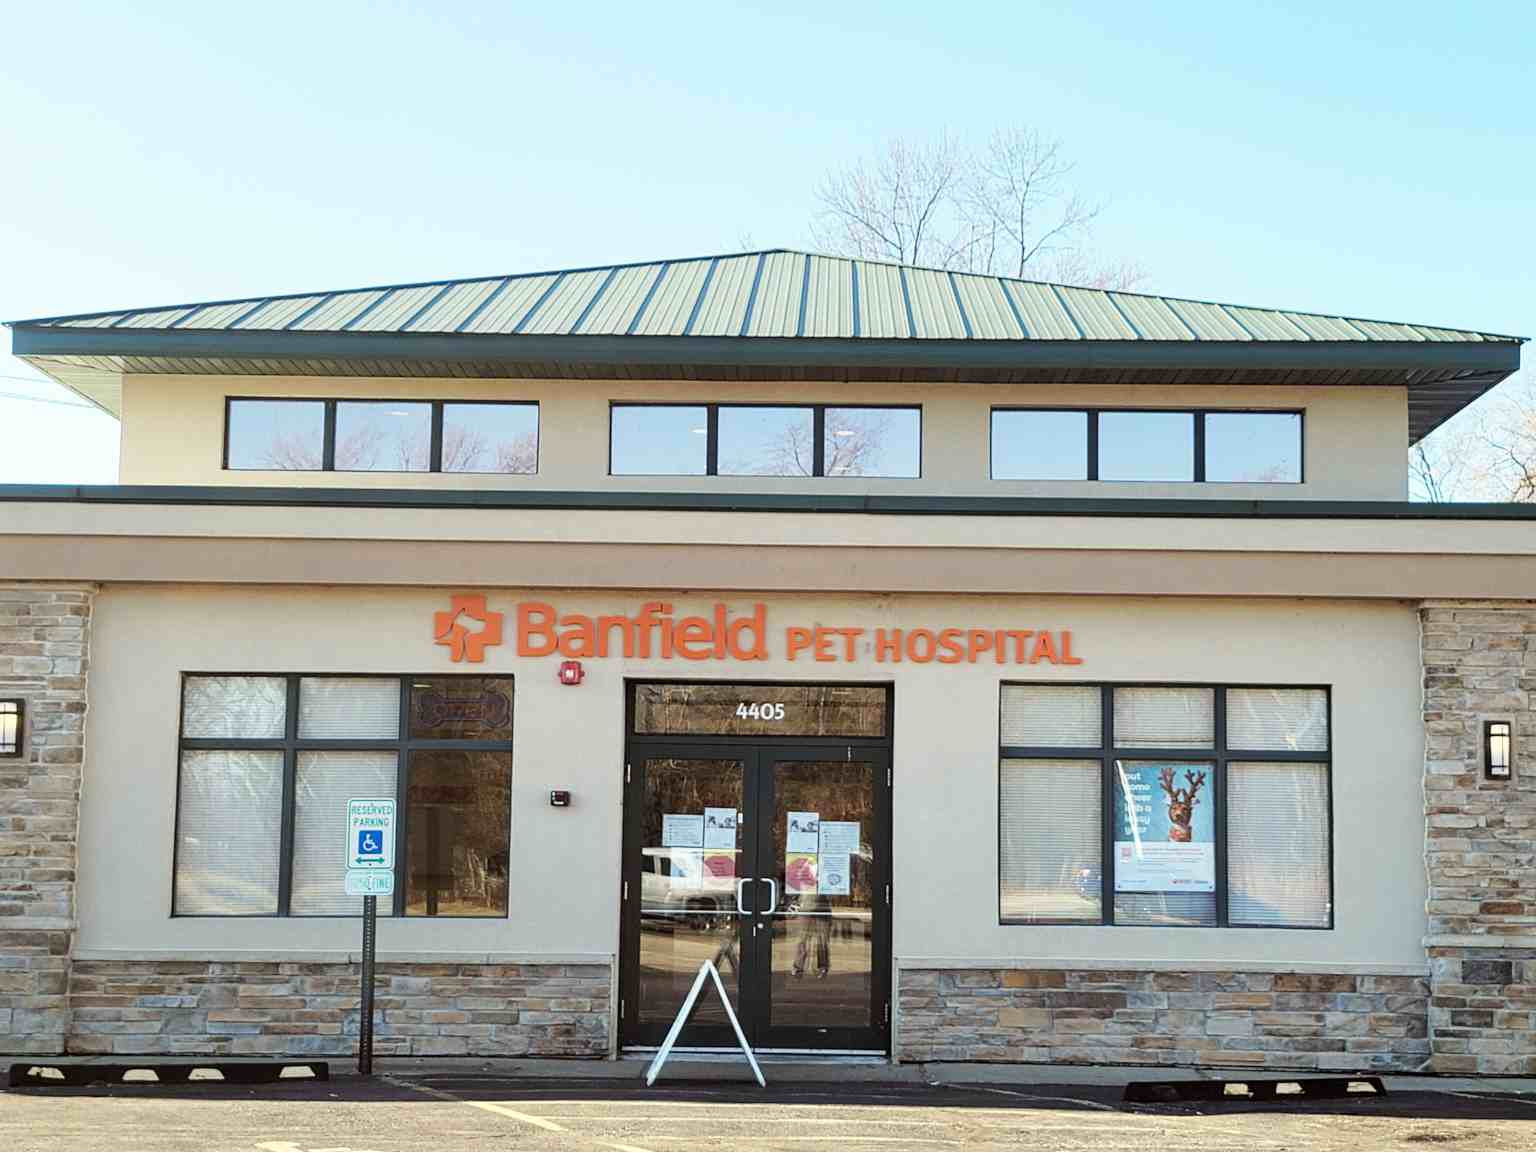 Entrance of the Banfield Pet Hospital